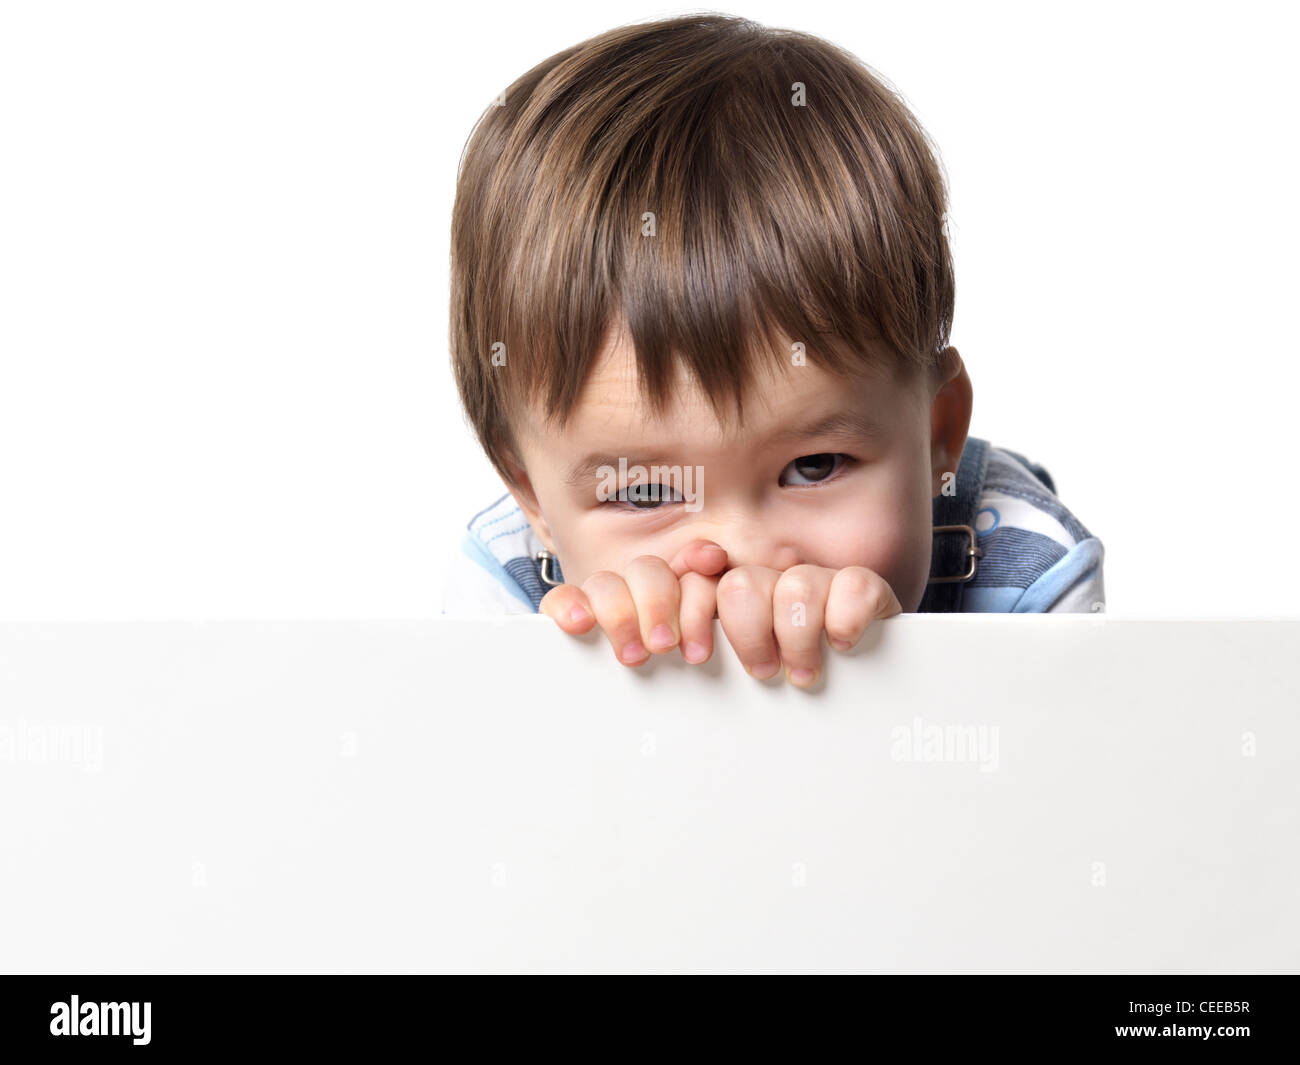 Two year old boy behind a white sign isolated on white background with copyspace - Stock Image